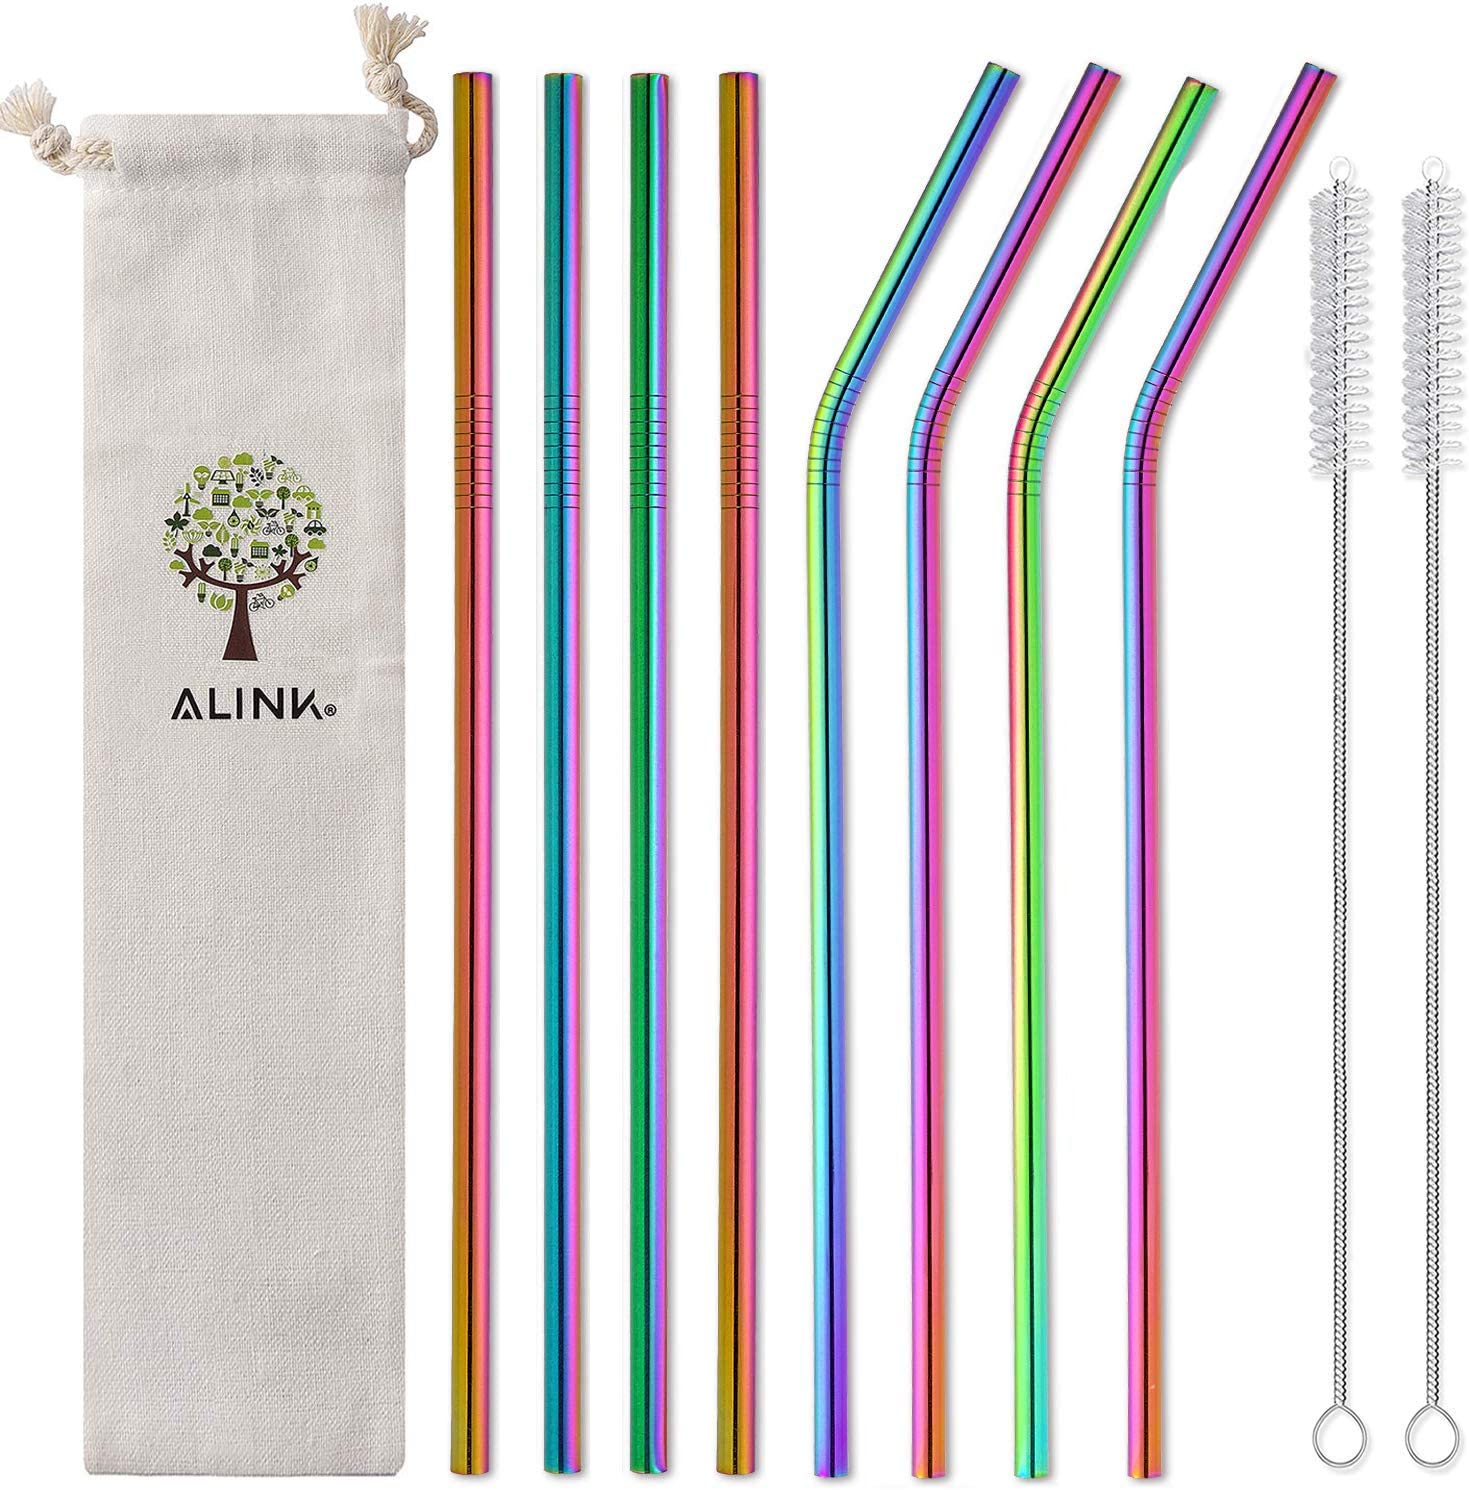 """ALINK 10.5"""" Long Reusable Rainbow Metal Drinking Straws with Silicone Covers, 8-Pack Stainless Steel Straws for 30oz / 20oz Yeti/Rtic Tumblers with Cleaning Brush and Carrying Case"""